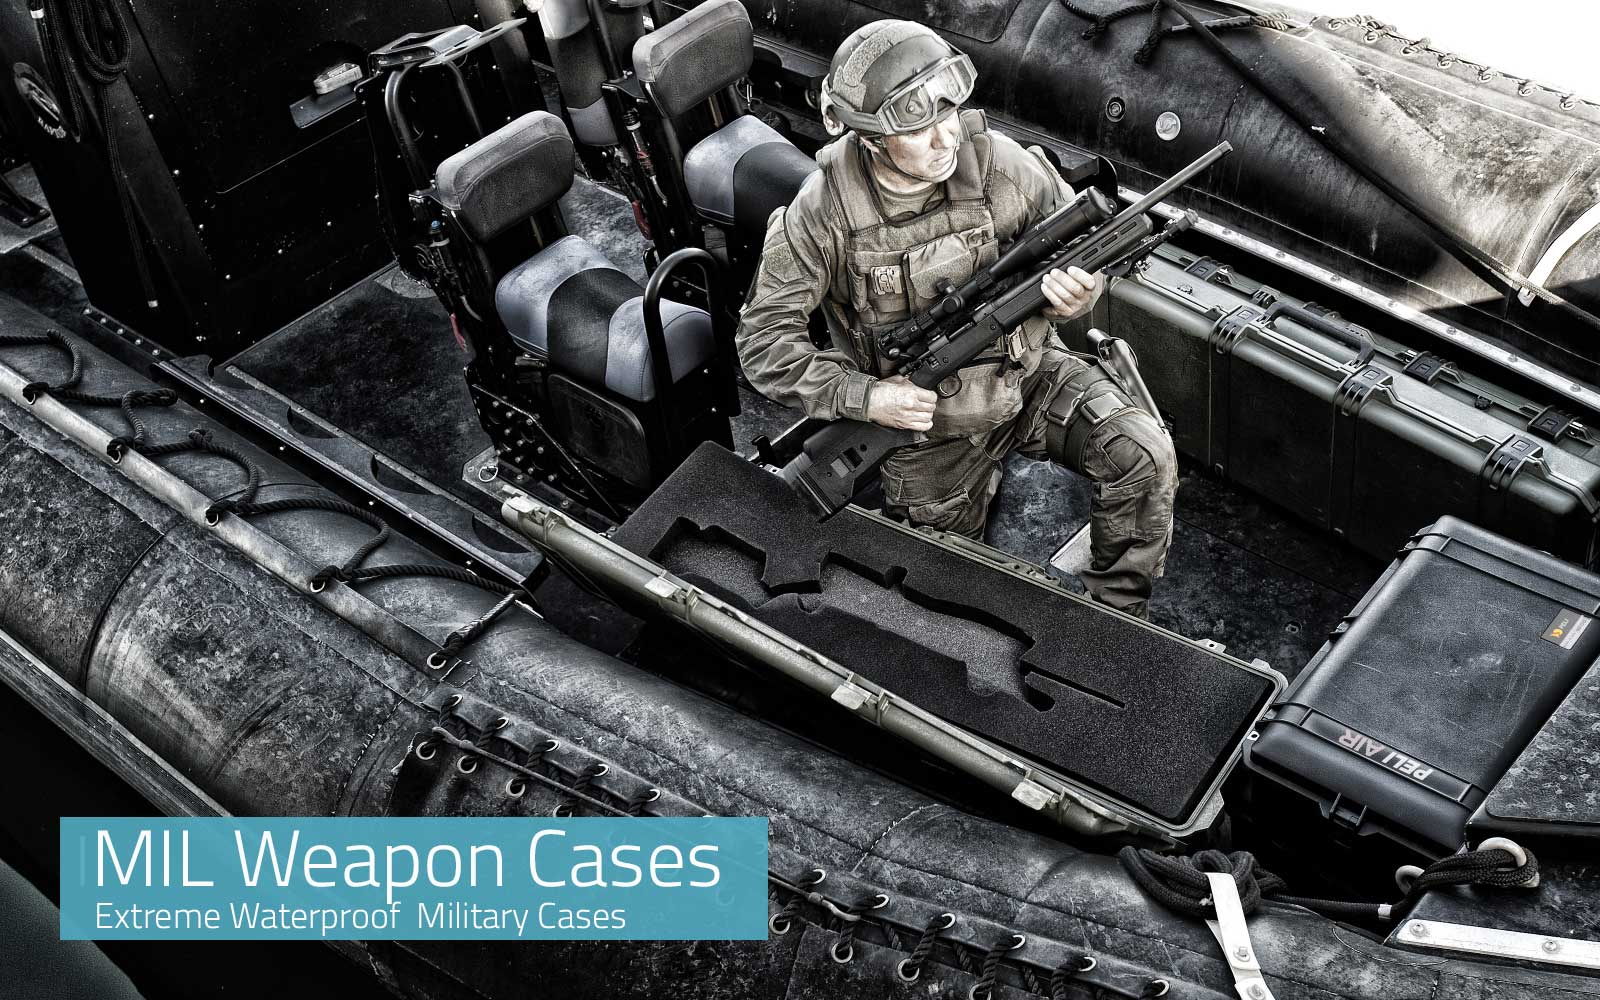 Military Weapon Cases